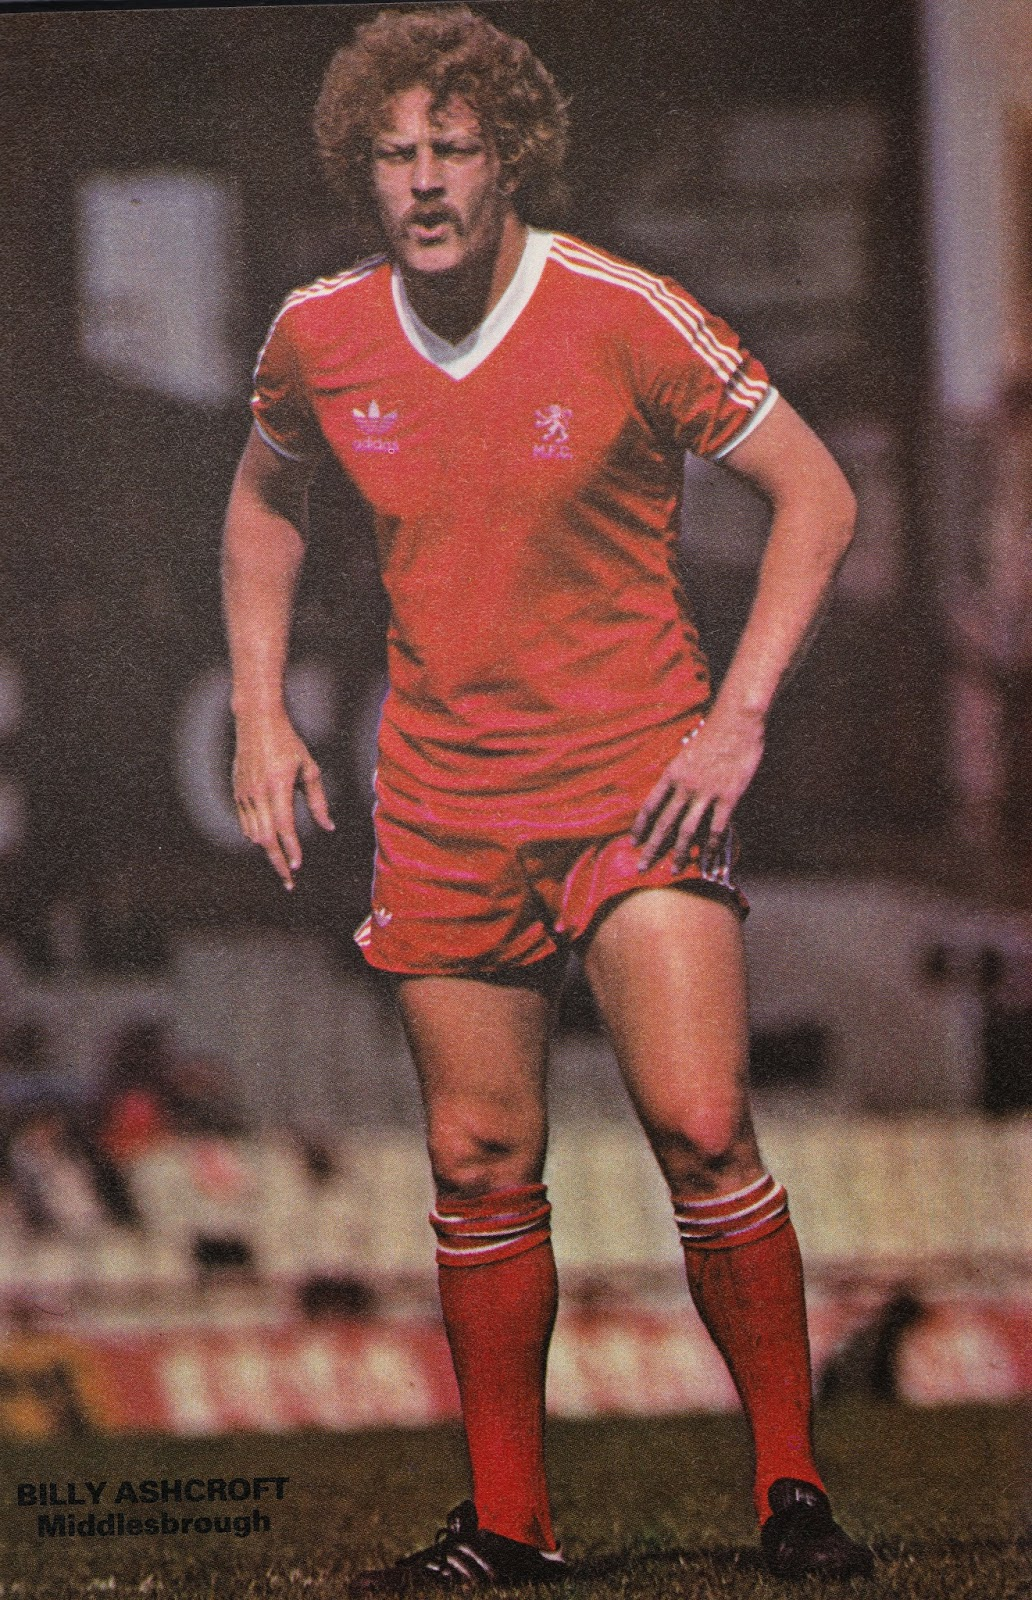 Middlesborough's Billy Ashcroft